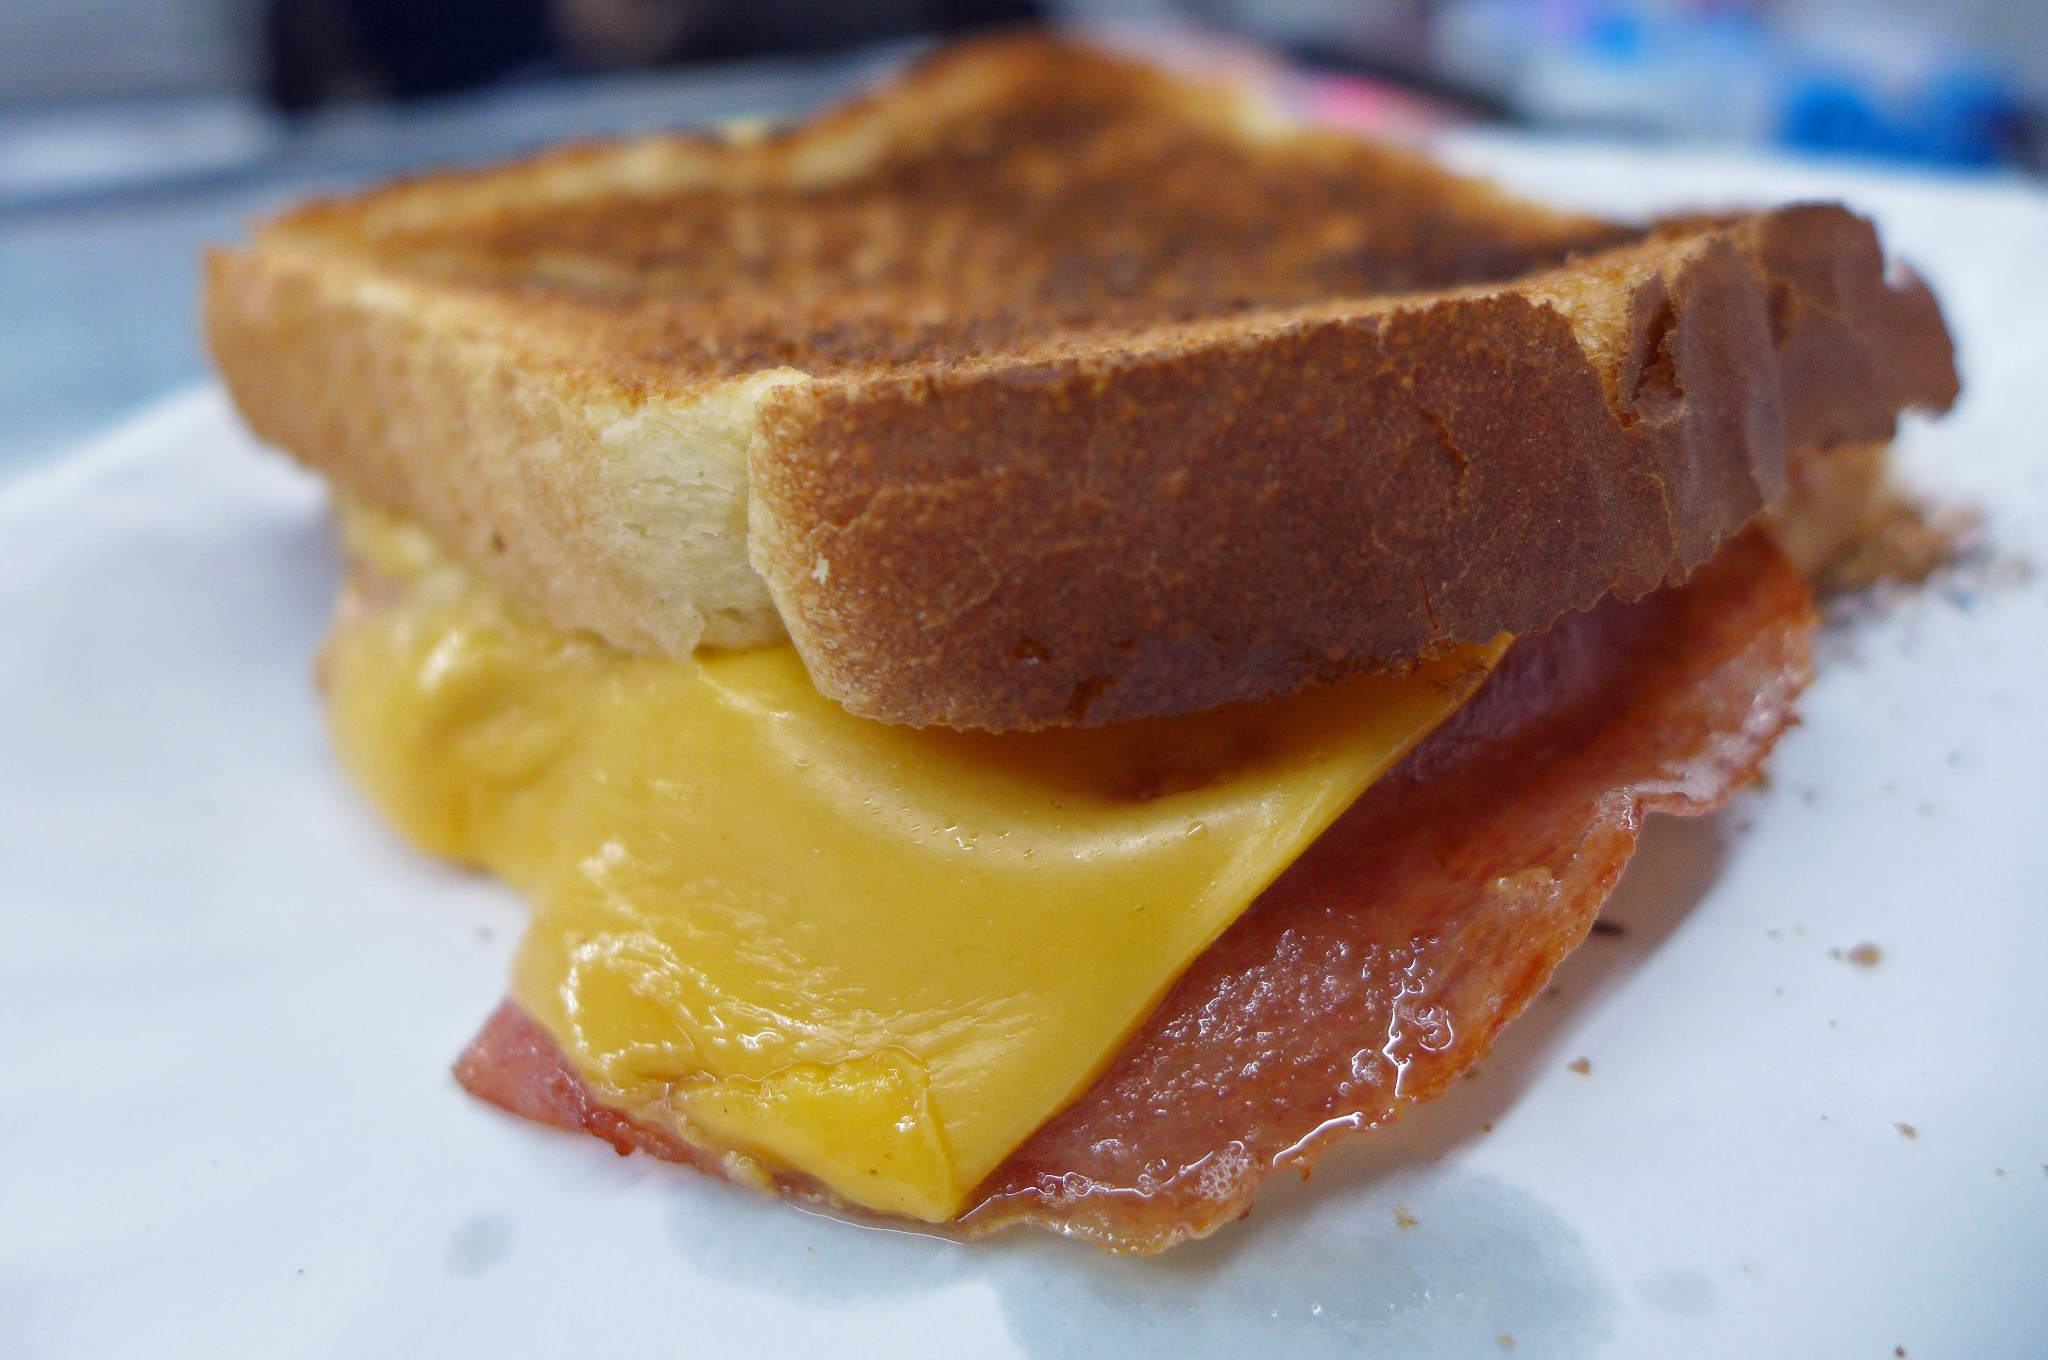 Two pieces of choice with ham and American cheese in between the slices, crumbs strewn around.